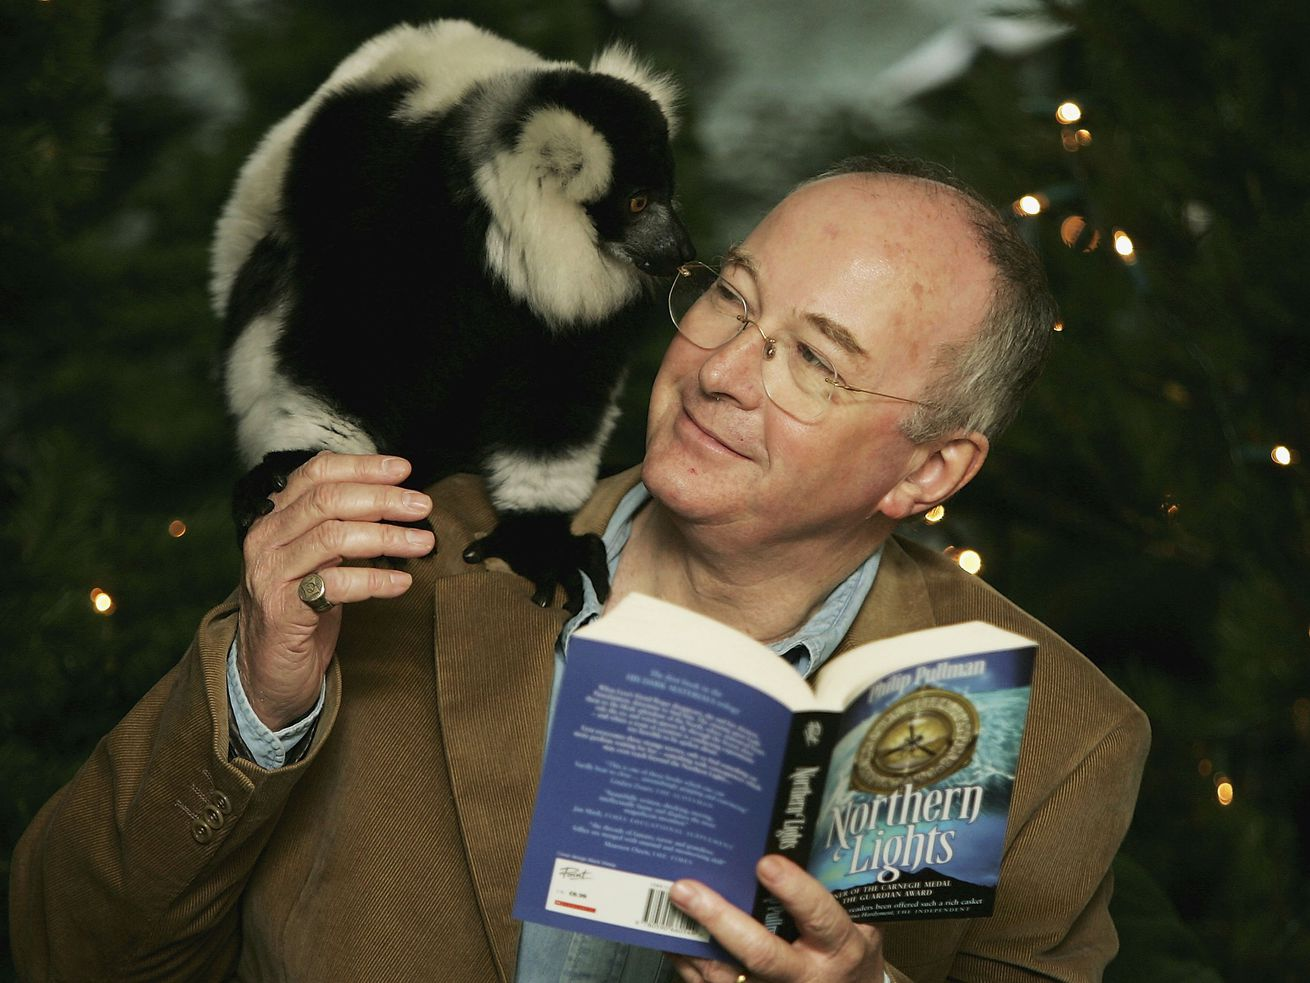 Philip Pullman with an animal at London Zoo. Does the animal have the pen? Could be!